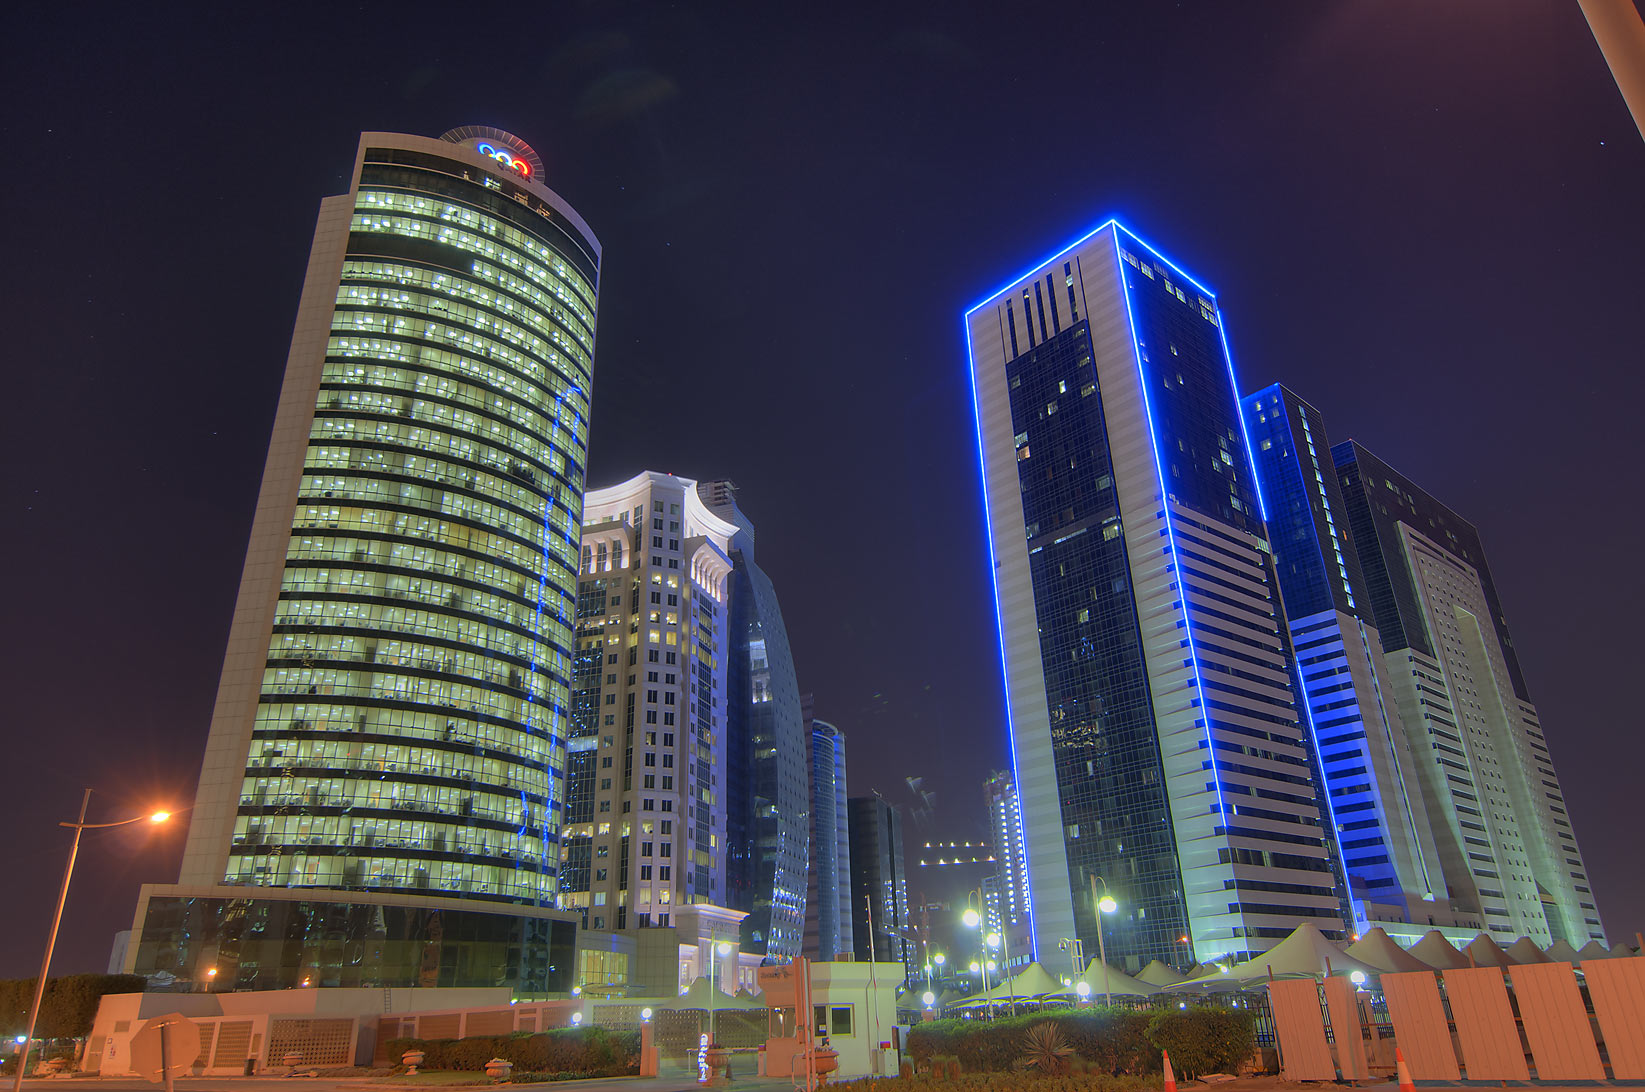 Olympic Tower and Ezdan Hotel in West Bay. Doha, Qatar